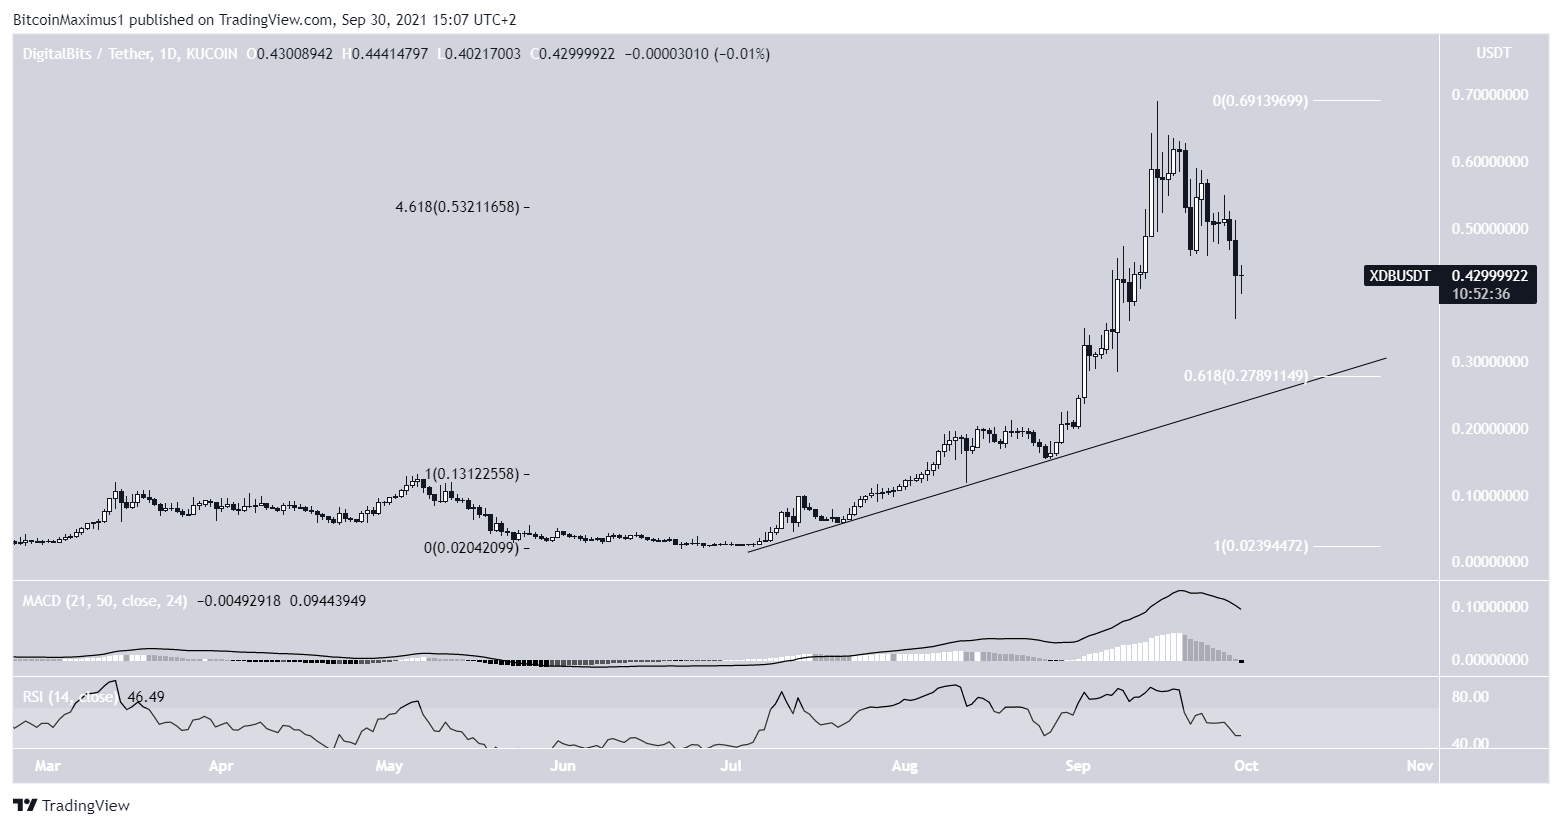 XDB Ascending support